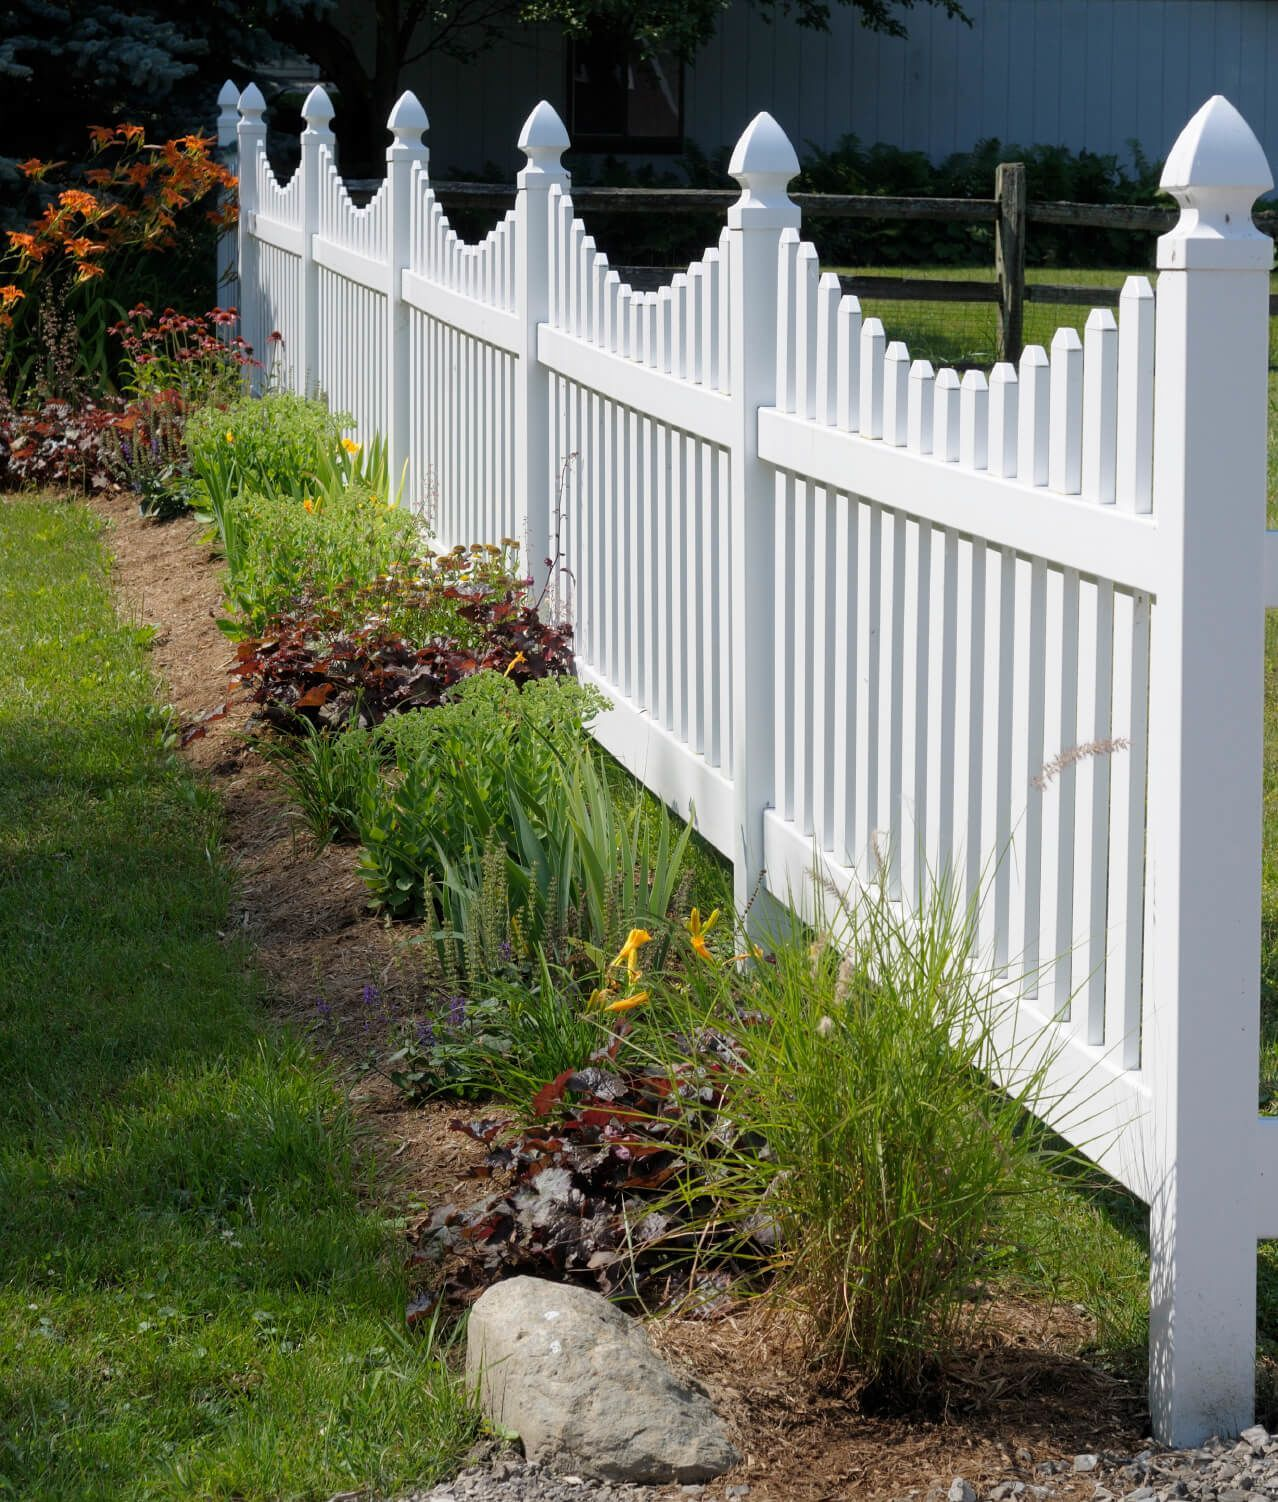 26 White Picket Fence Ideas And Designs In 2020 White Picket